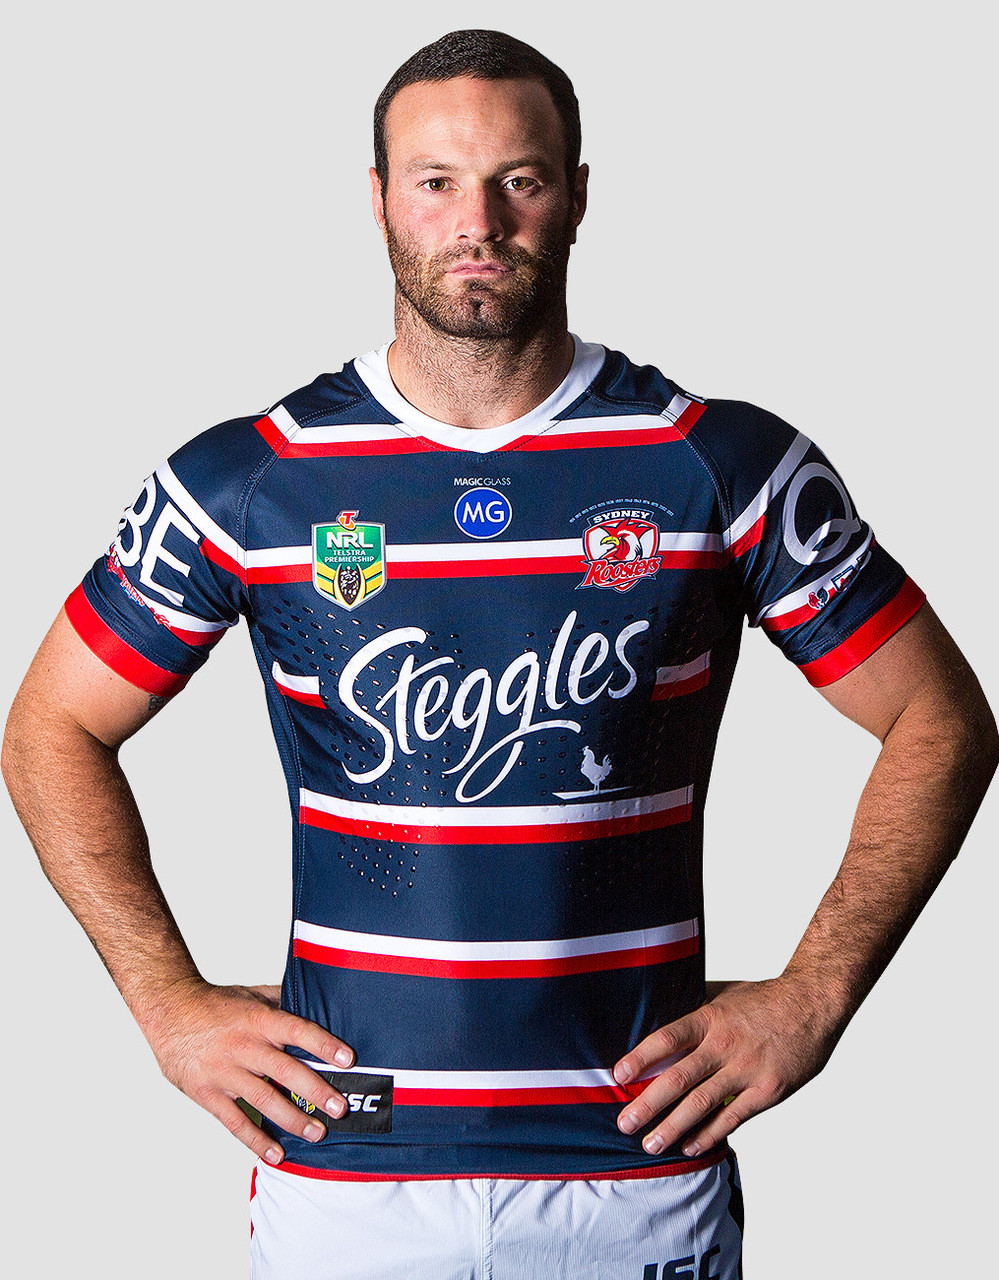 Sydney Roosters 2018 Mens Heritage Jersey - Roosters Shop c3c2b8a6d